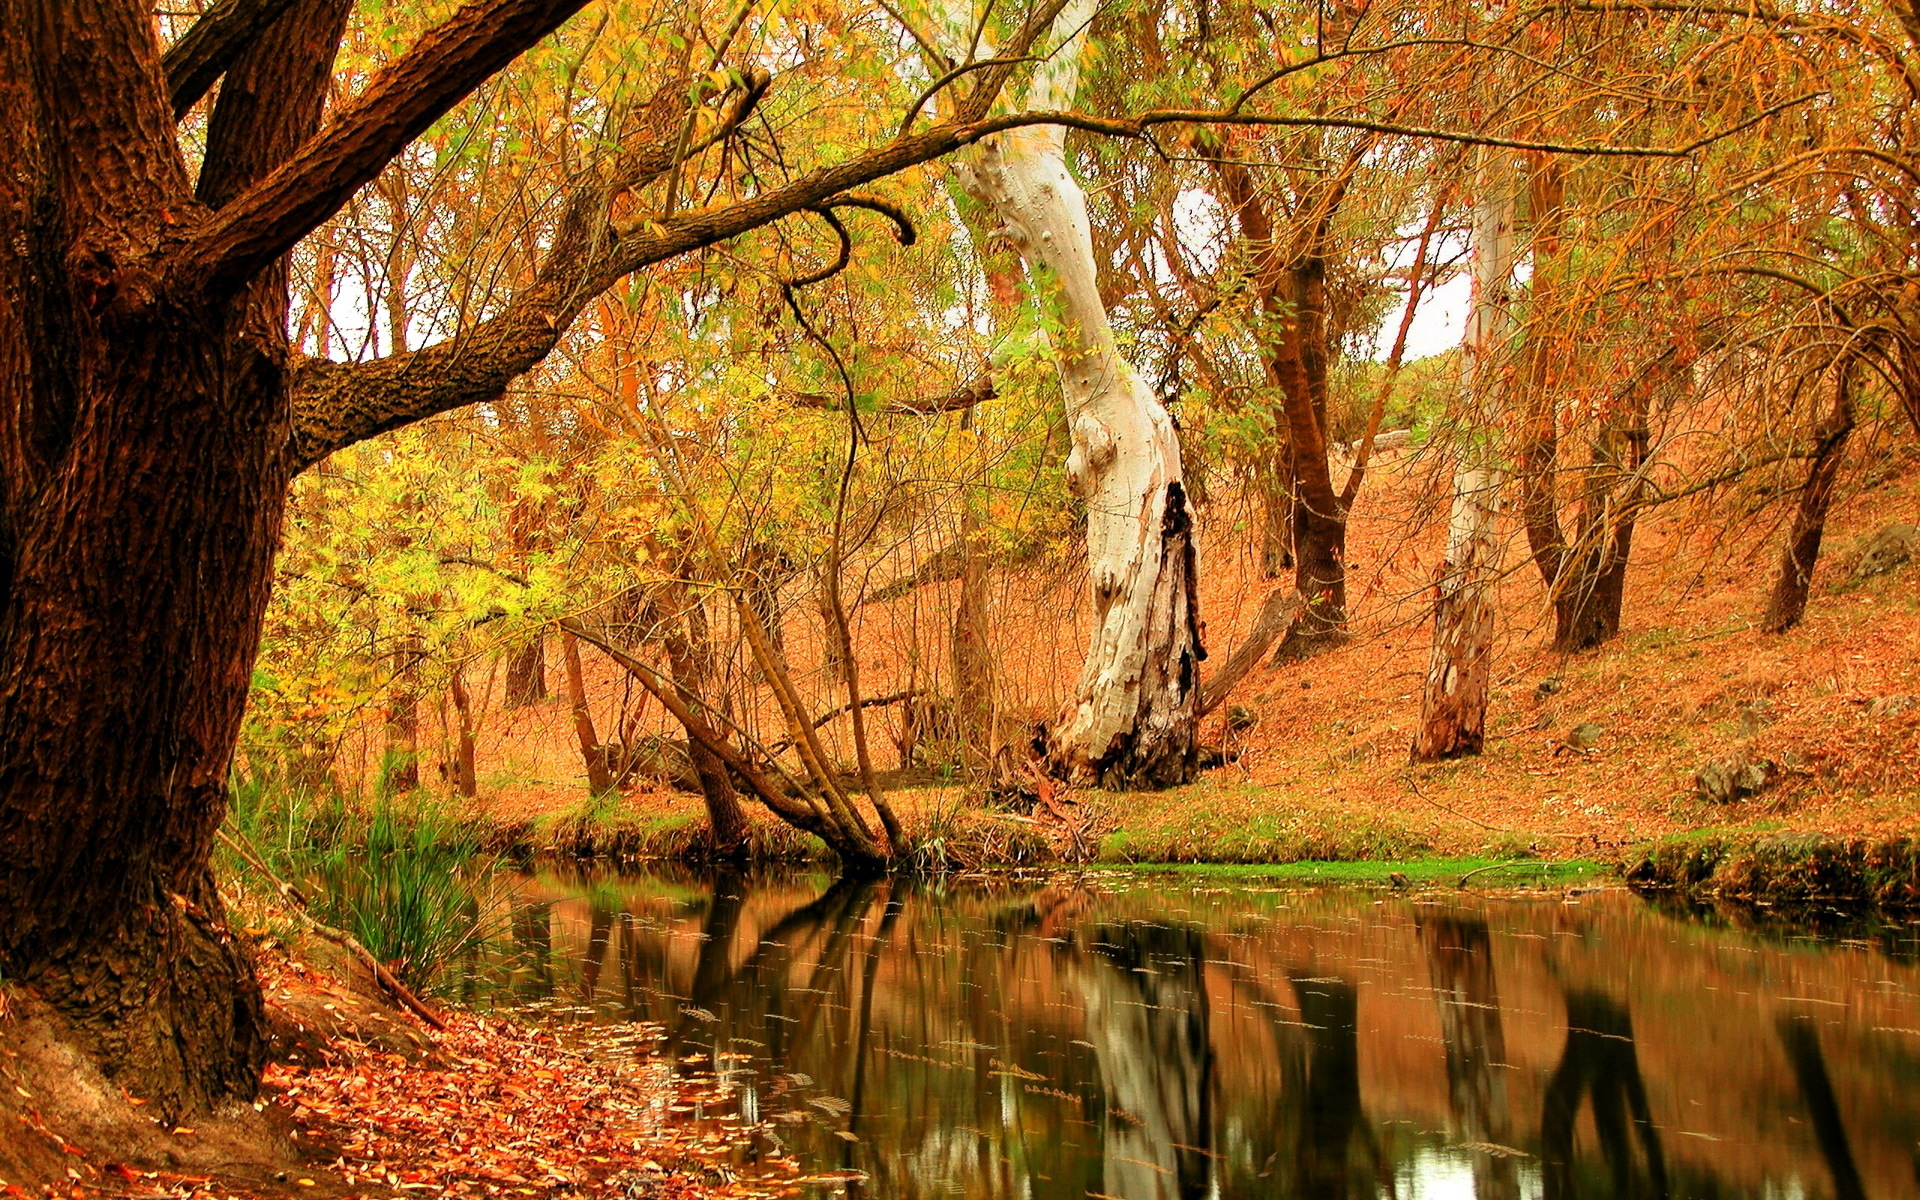 Fall Hd Wallpaper Beautiful Pictures Of Nature Autumn